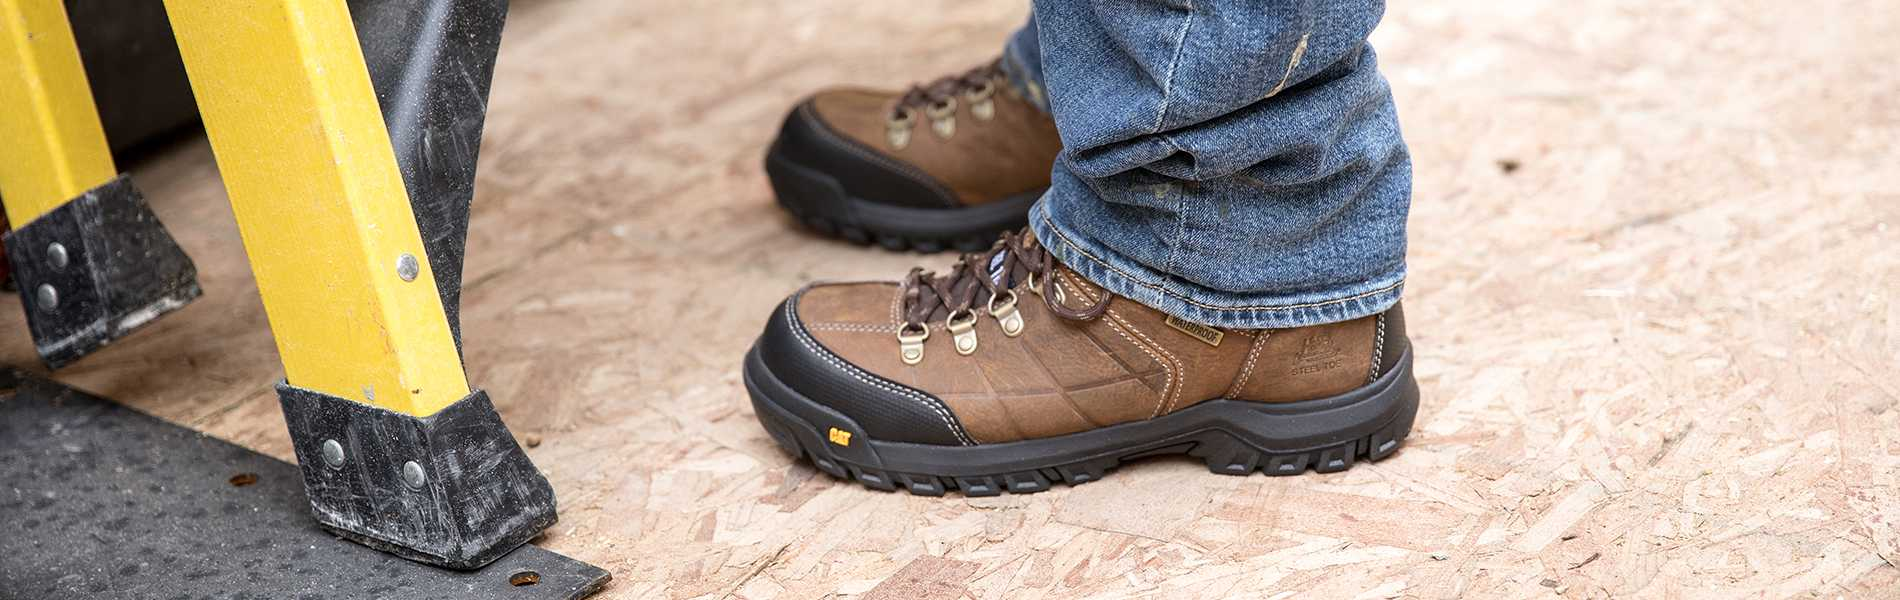 9 Best Steel Toe Work Boots for Men and Women